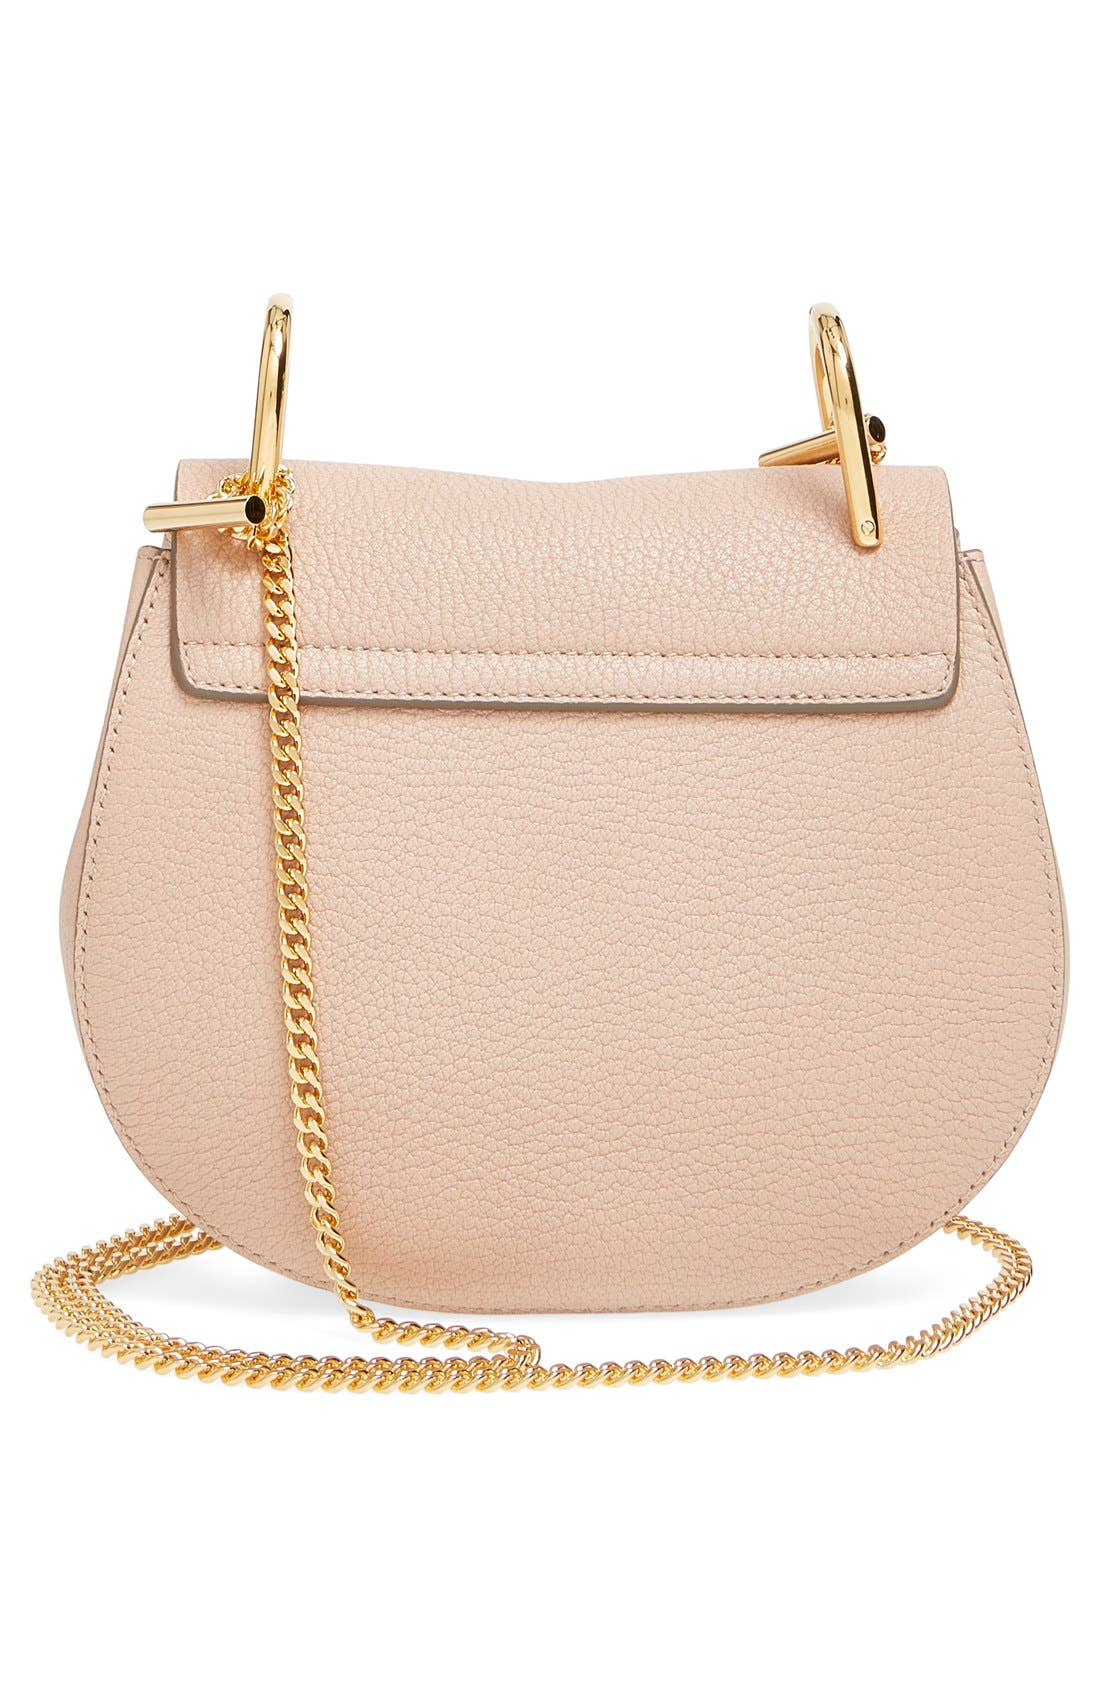 Alternate Image 3  - Chloé 'Mini Drew' Leather Shoulder Bag